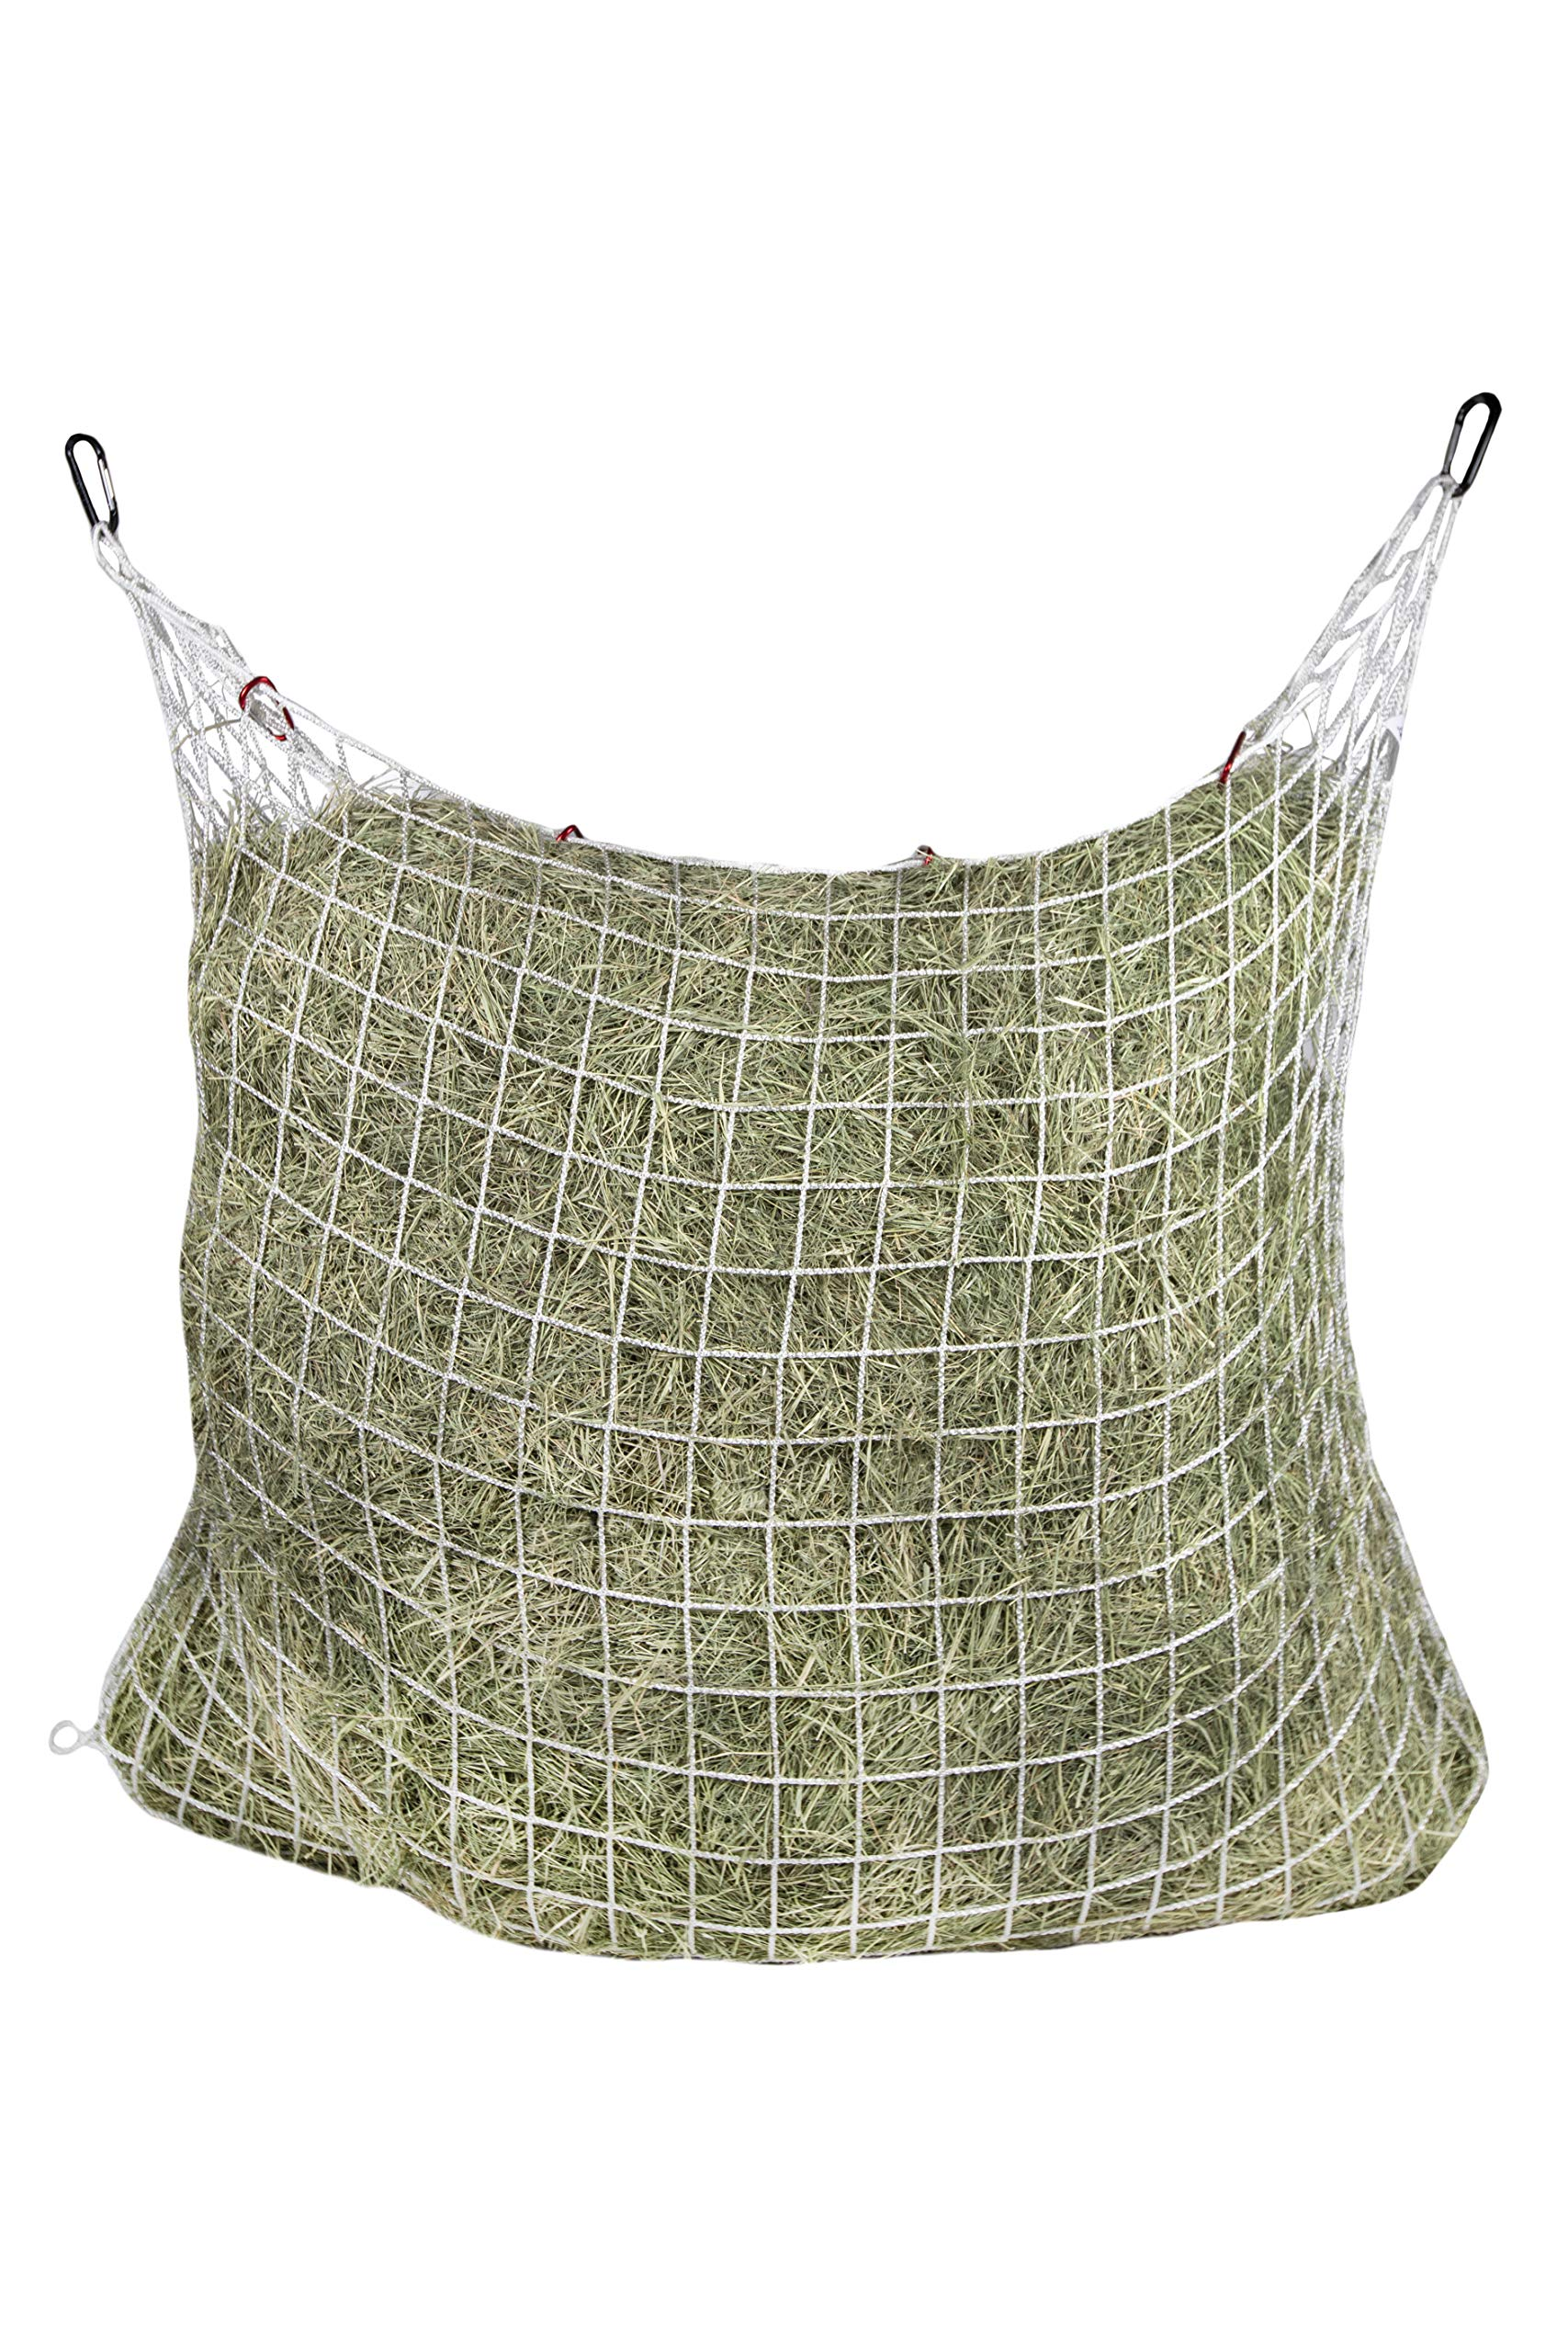 Freedom Feeder Mesh Net Two Day Slow Horse Feeder - Designed to Hold 50 lbs/6 Flakes/2 String Bale of Hay and Feed Horse for Two Days - Reduces Horse Feeding Anxiety and Behavioral Issues